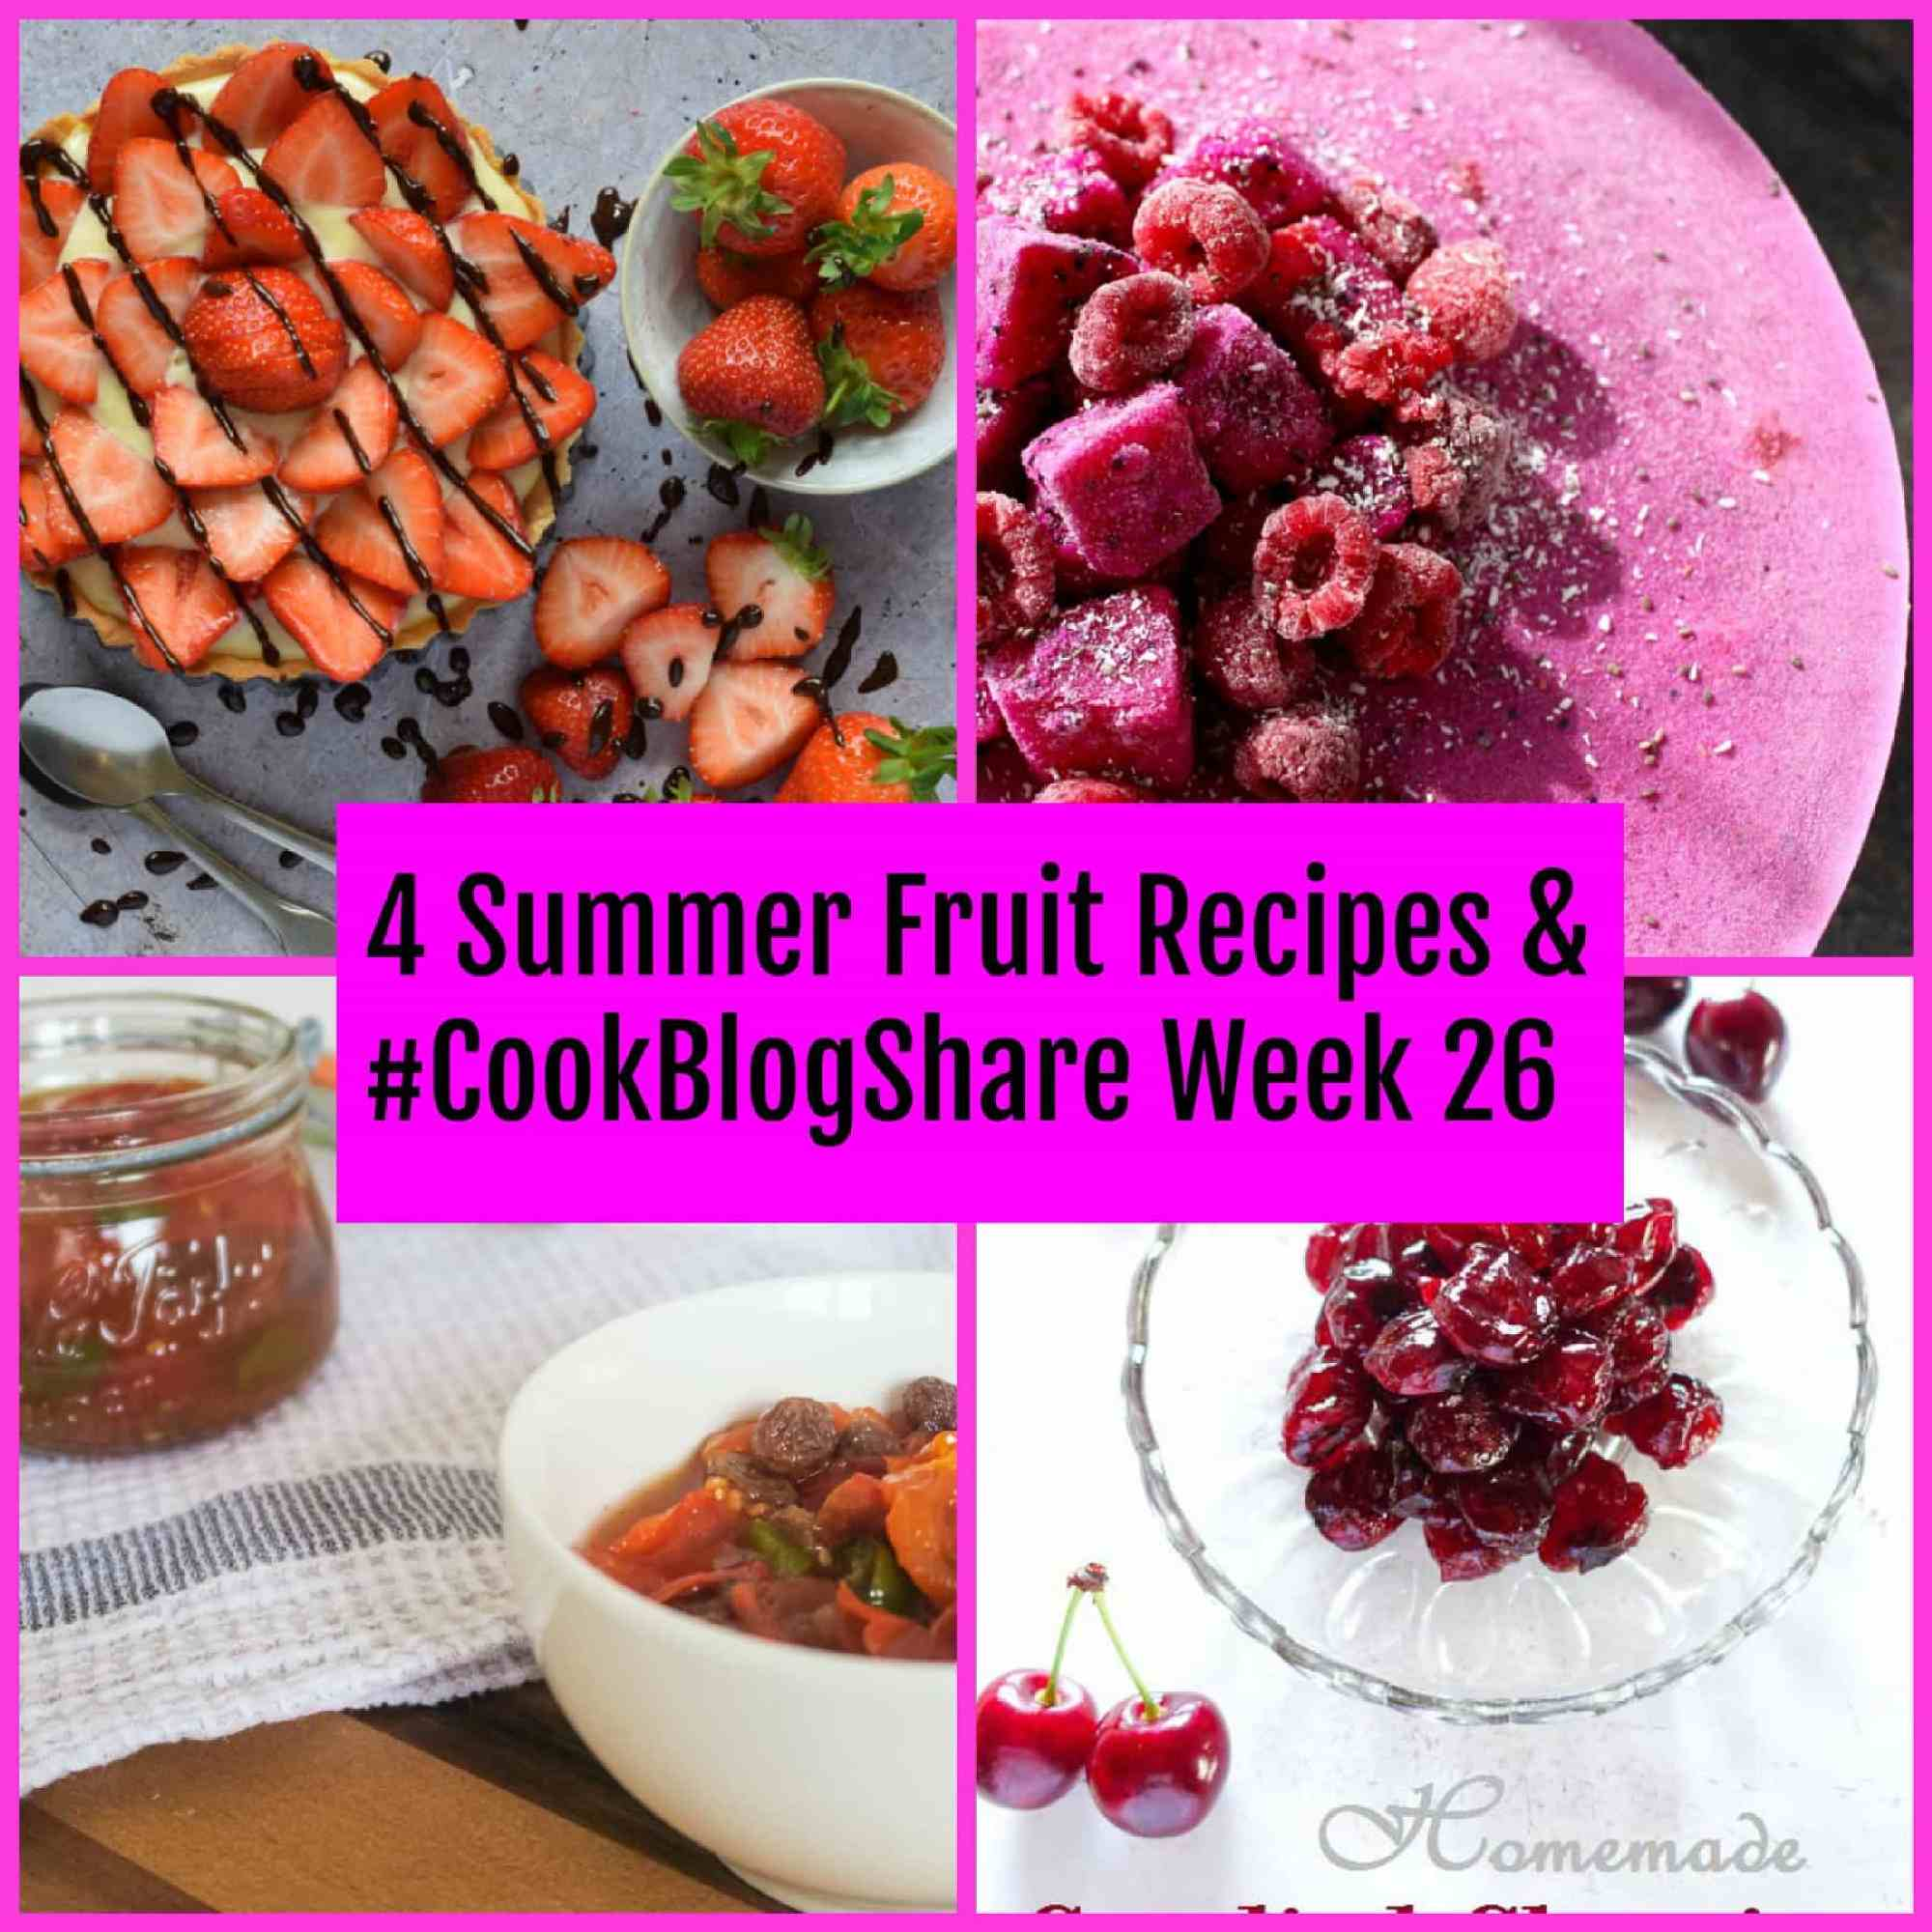 Cook Blog Share Week 26